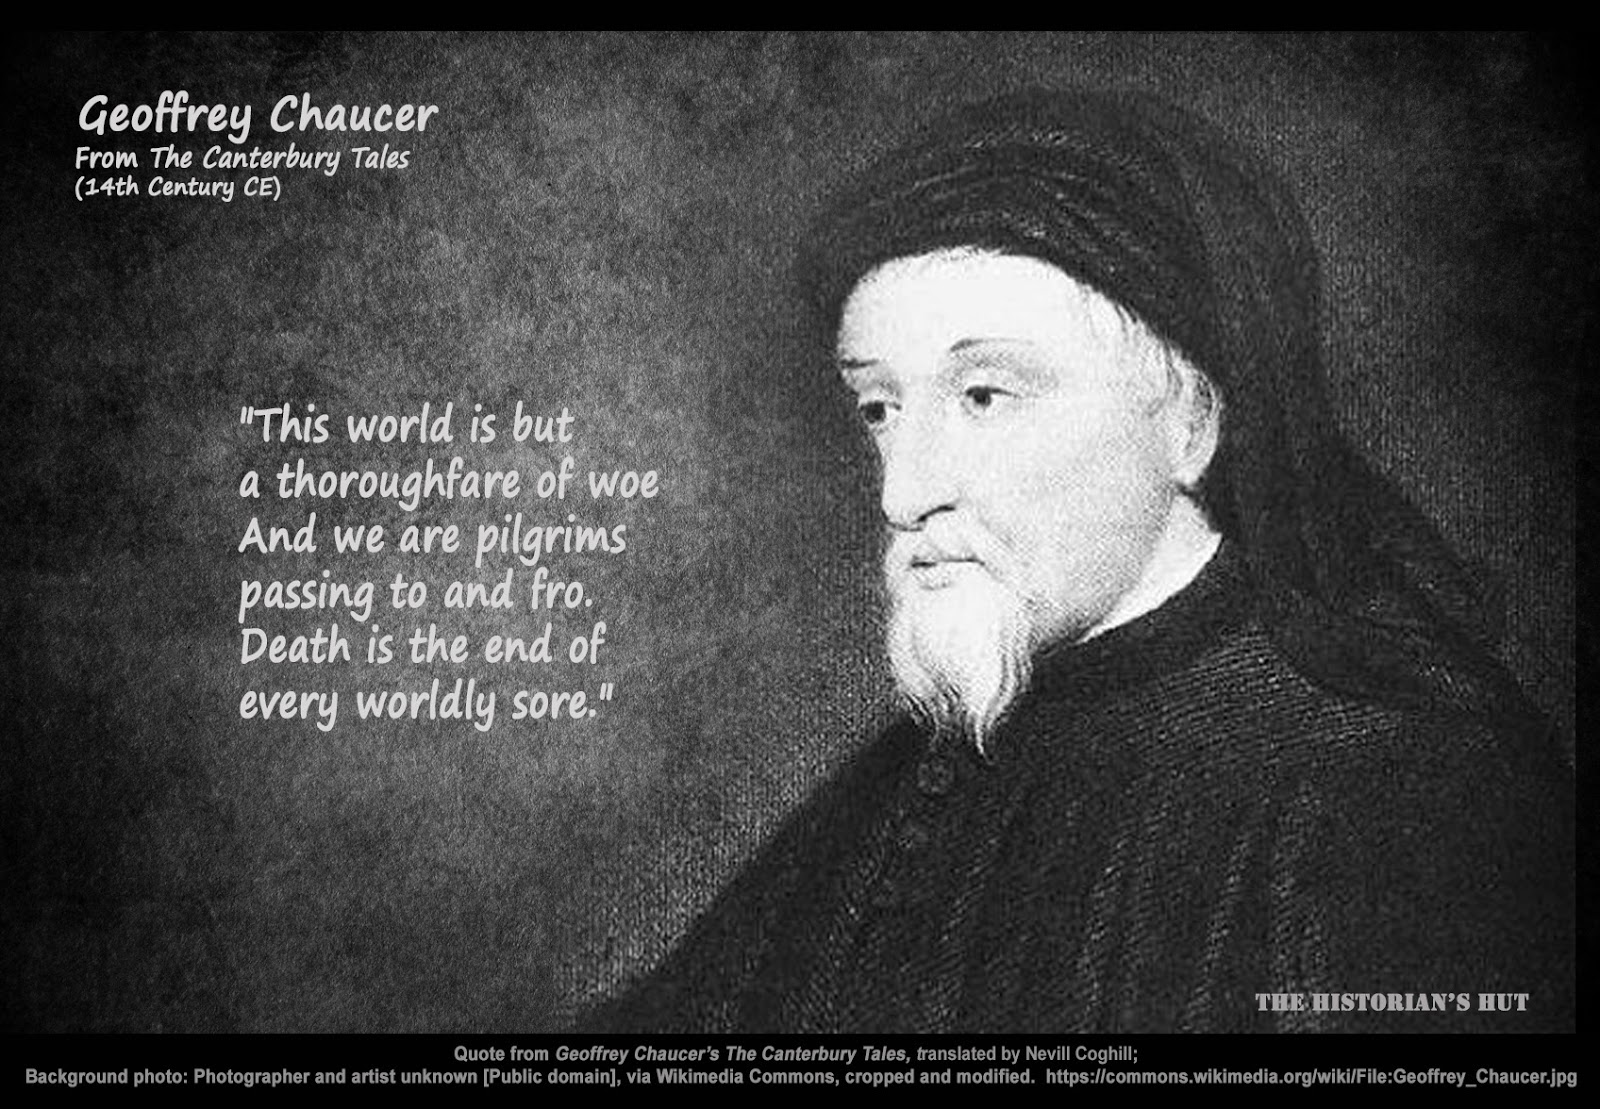 geoffrey chaucers use of sarcasm to The canterbury tales by geoffrey chaucer: character analysis free study guide for the canterbury tales by geoffrey chaucer previous page.